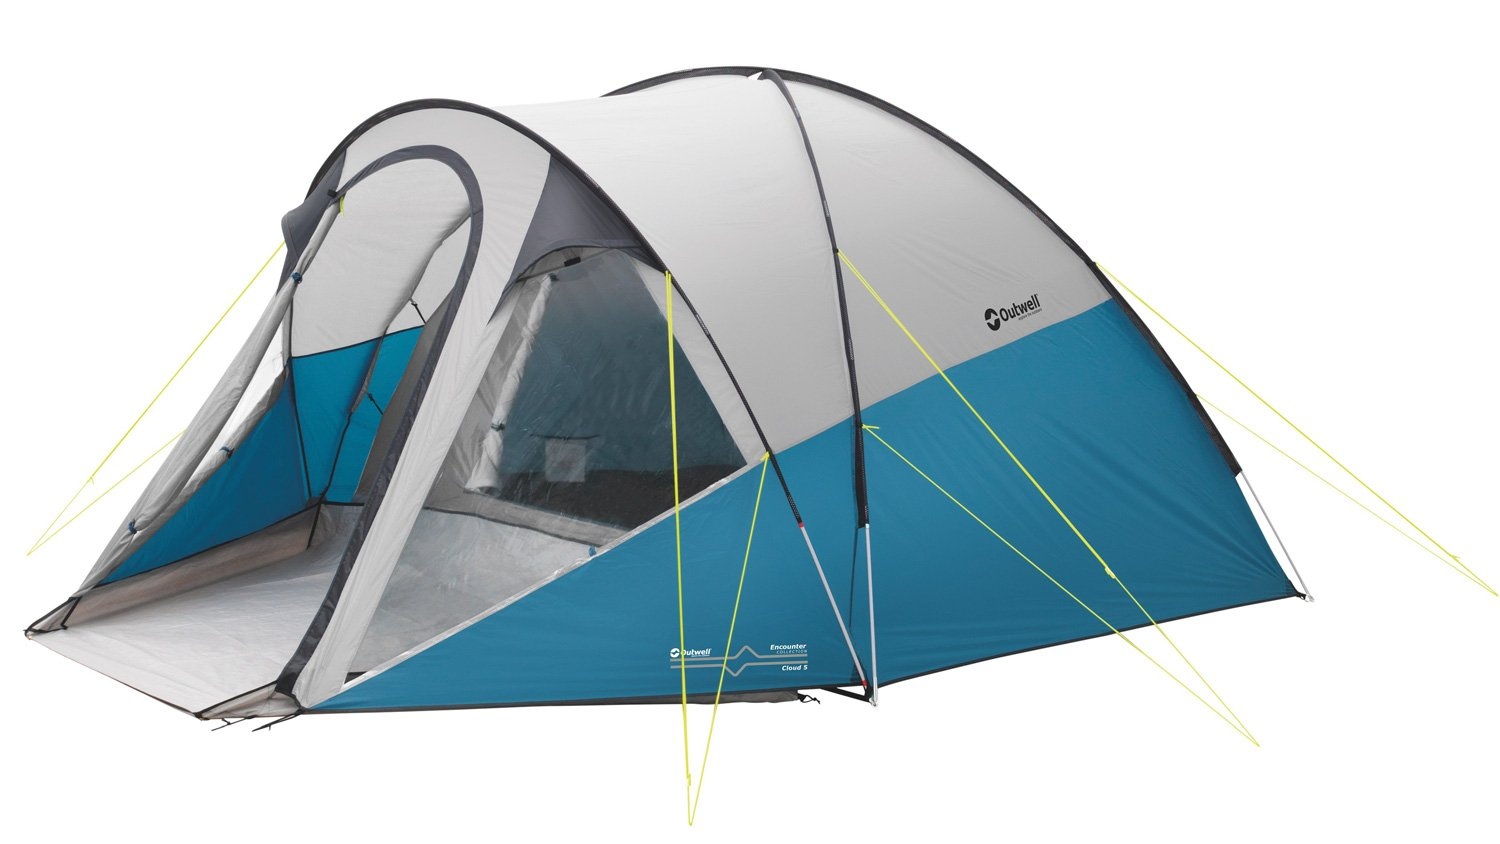 Outwell Cloud 5 Tent grey/blue 2016 tube tent Amazon.co.uk Sports u0026 Outdoors  sc 1 st  Amazon UK & Outwell Cloud 5 Tent grey/blue 2016 tube tent: Amazon.co.uk ...